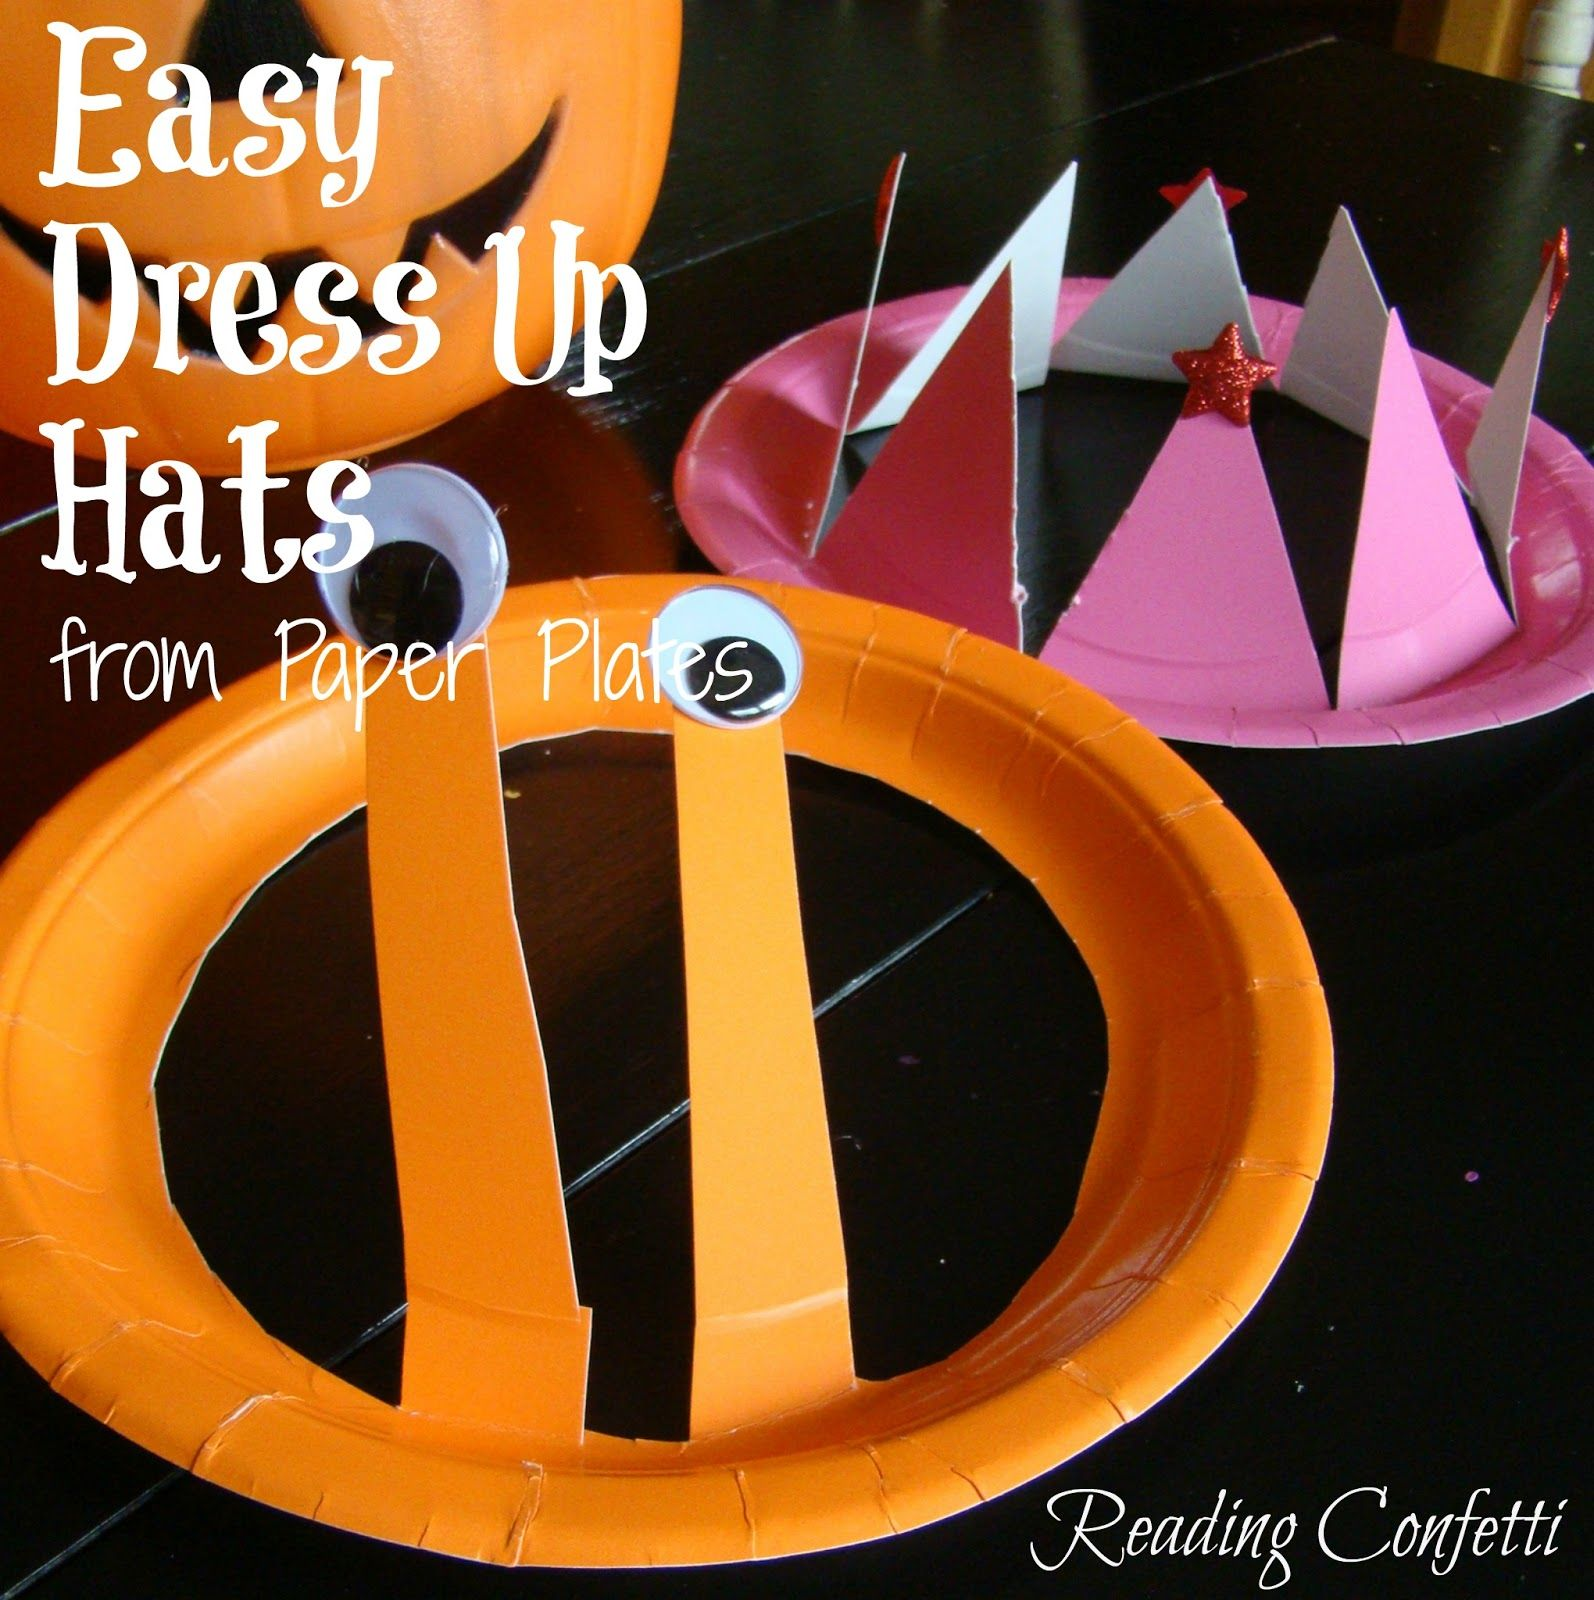 A cheap and easy way to make some hats for dress up or halloween reading confetti easy dress up hats paper plate craft jeuxipadfo Image collections